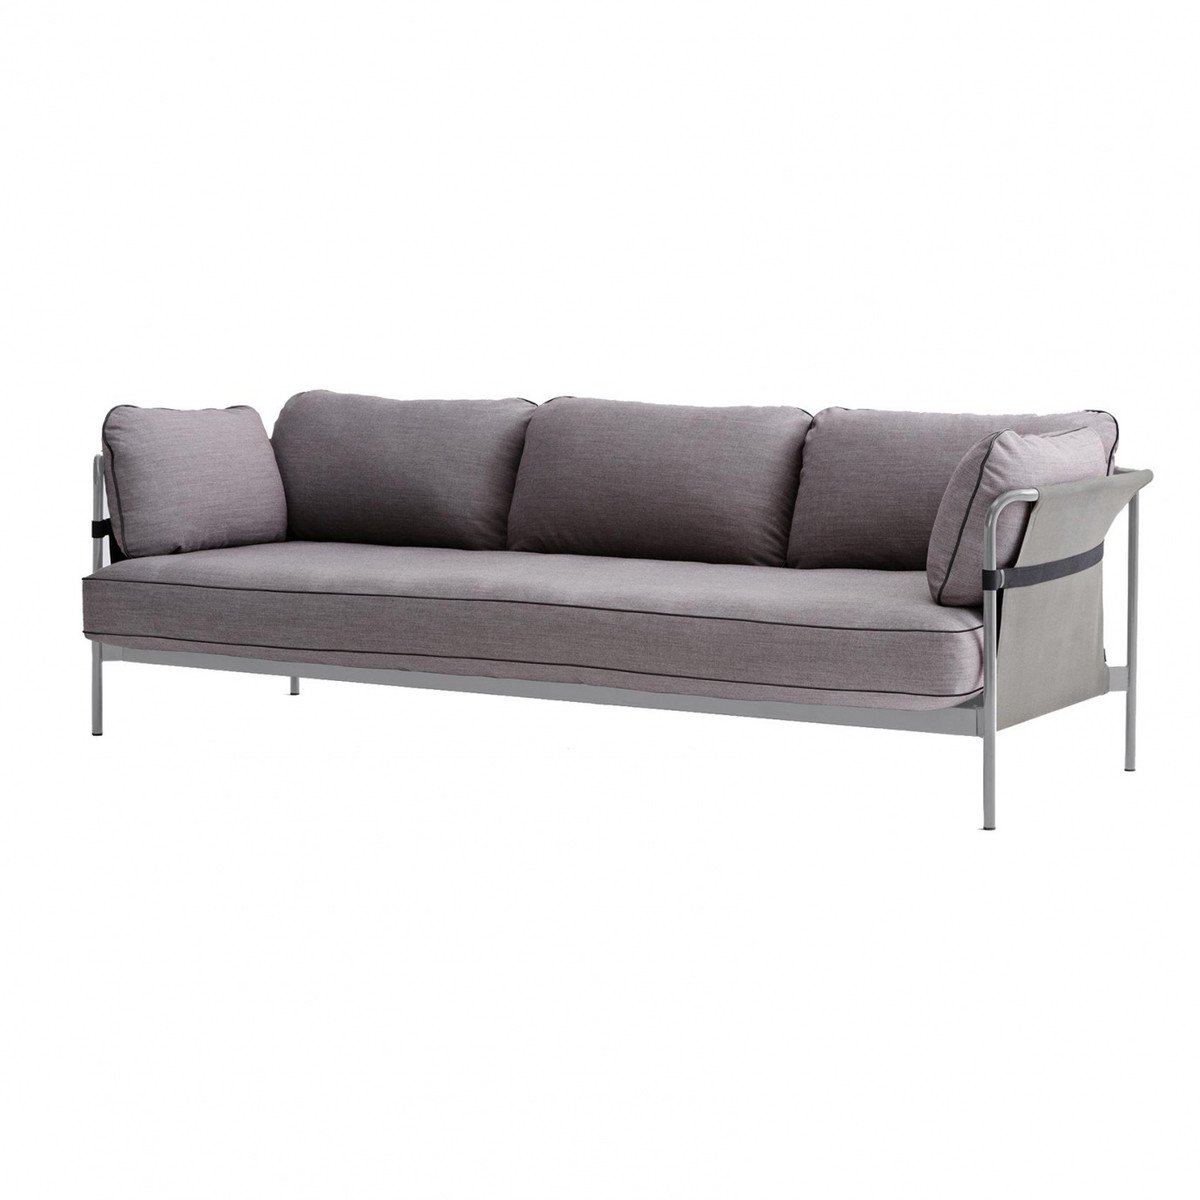 sofa grau stoff free medium size of rolf benz sofa grau stoff stoffbezug qualitat ikea meliert. Black Bedroom Furniture Sets. Home Design Ideas